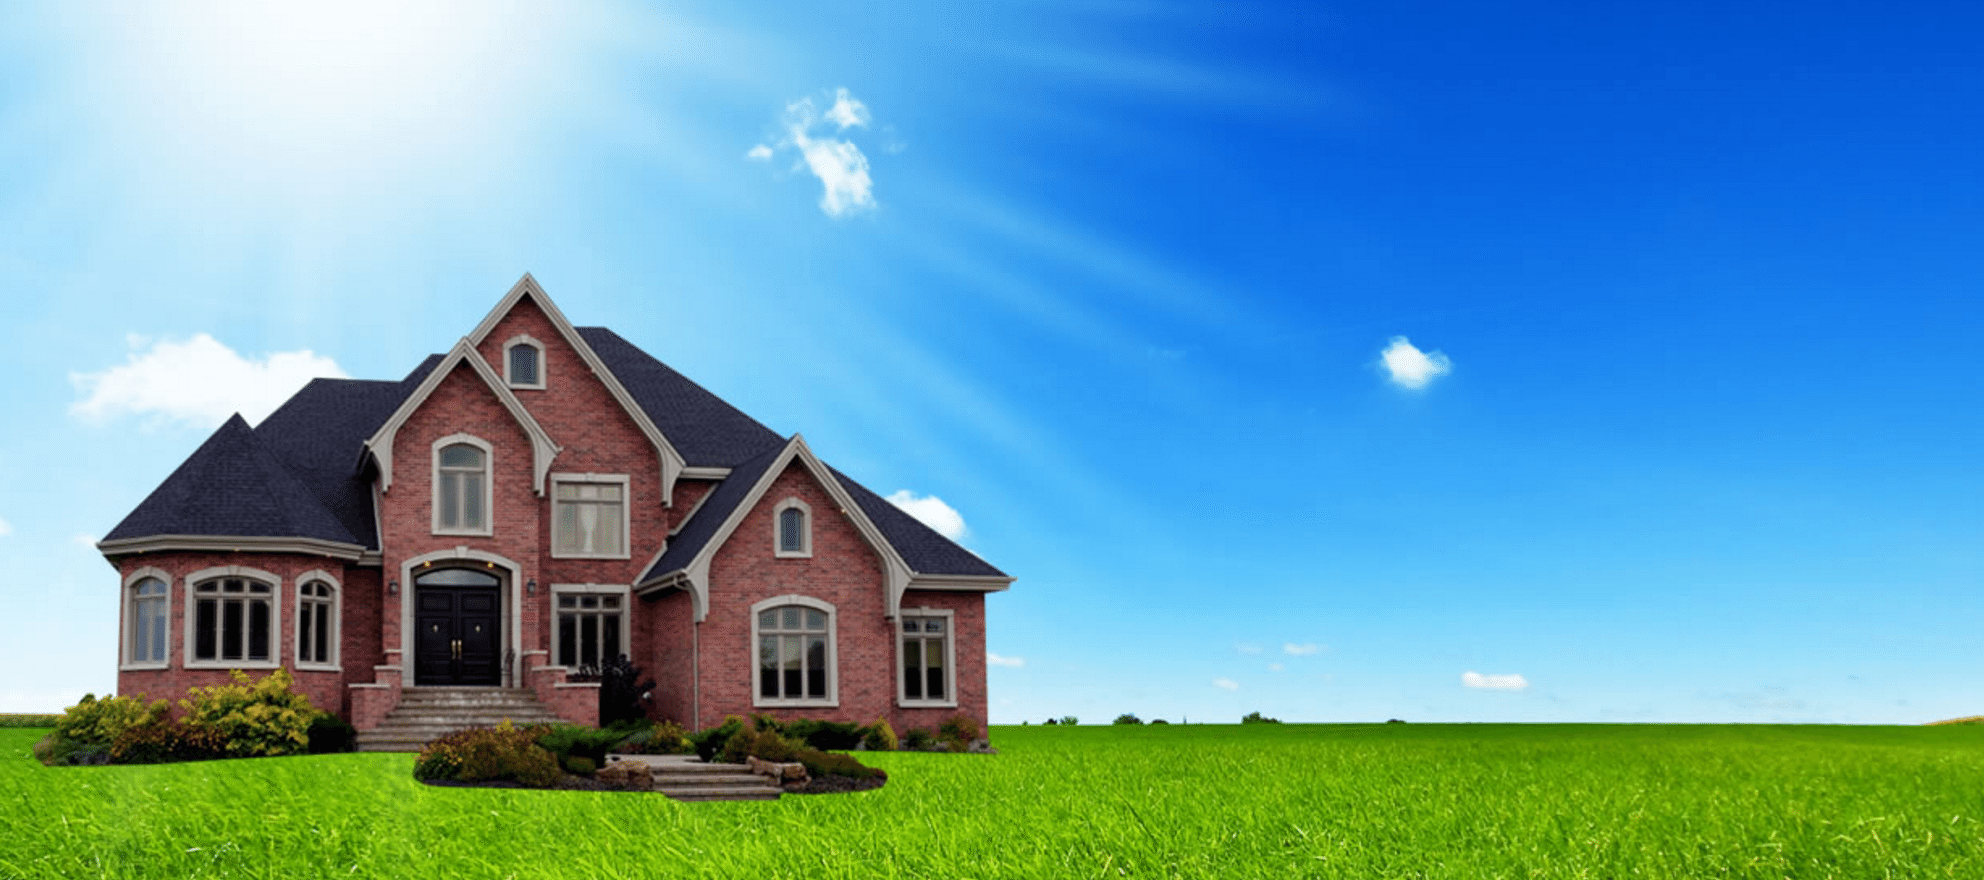 Zillow Arkansas: Home Prices and Rental Data